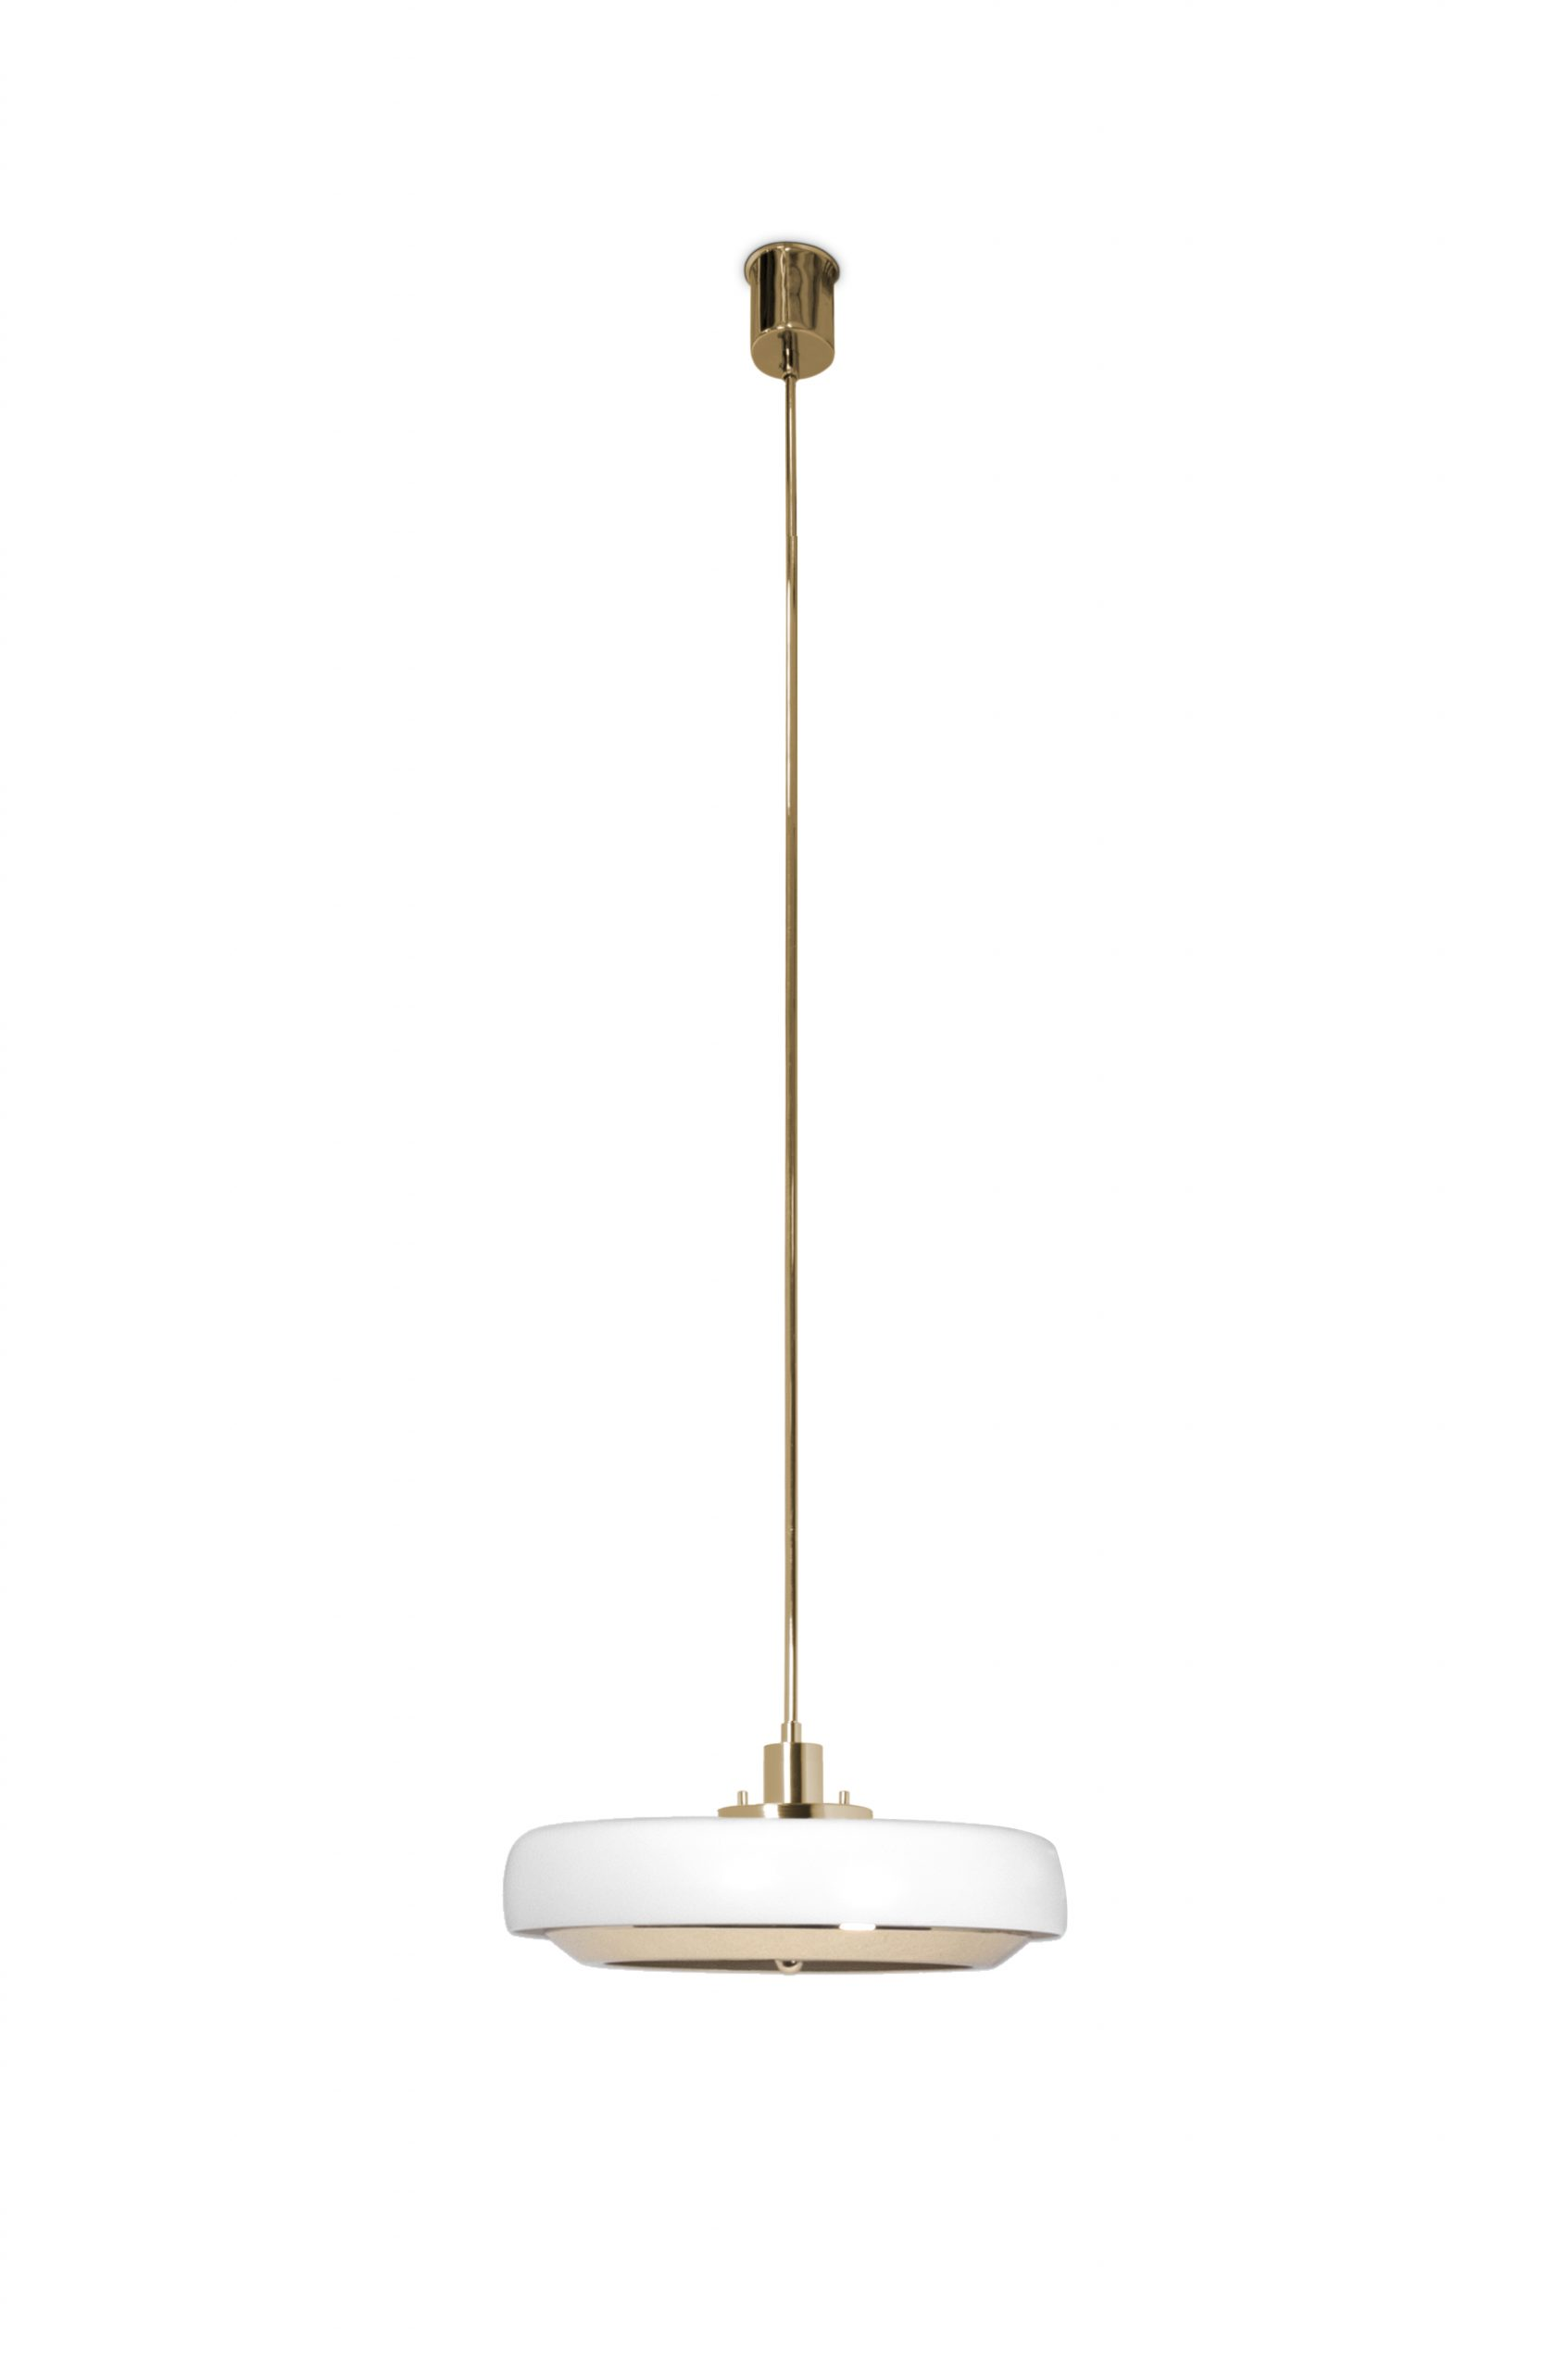 EXCLUSIVE: The New Mid Century Pendant Lamp Everyone Will Talk About! pendant lamp EXCLUSIVE: The New Mid Century Pendant Lamp Everyone Will Talk About! 8 1